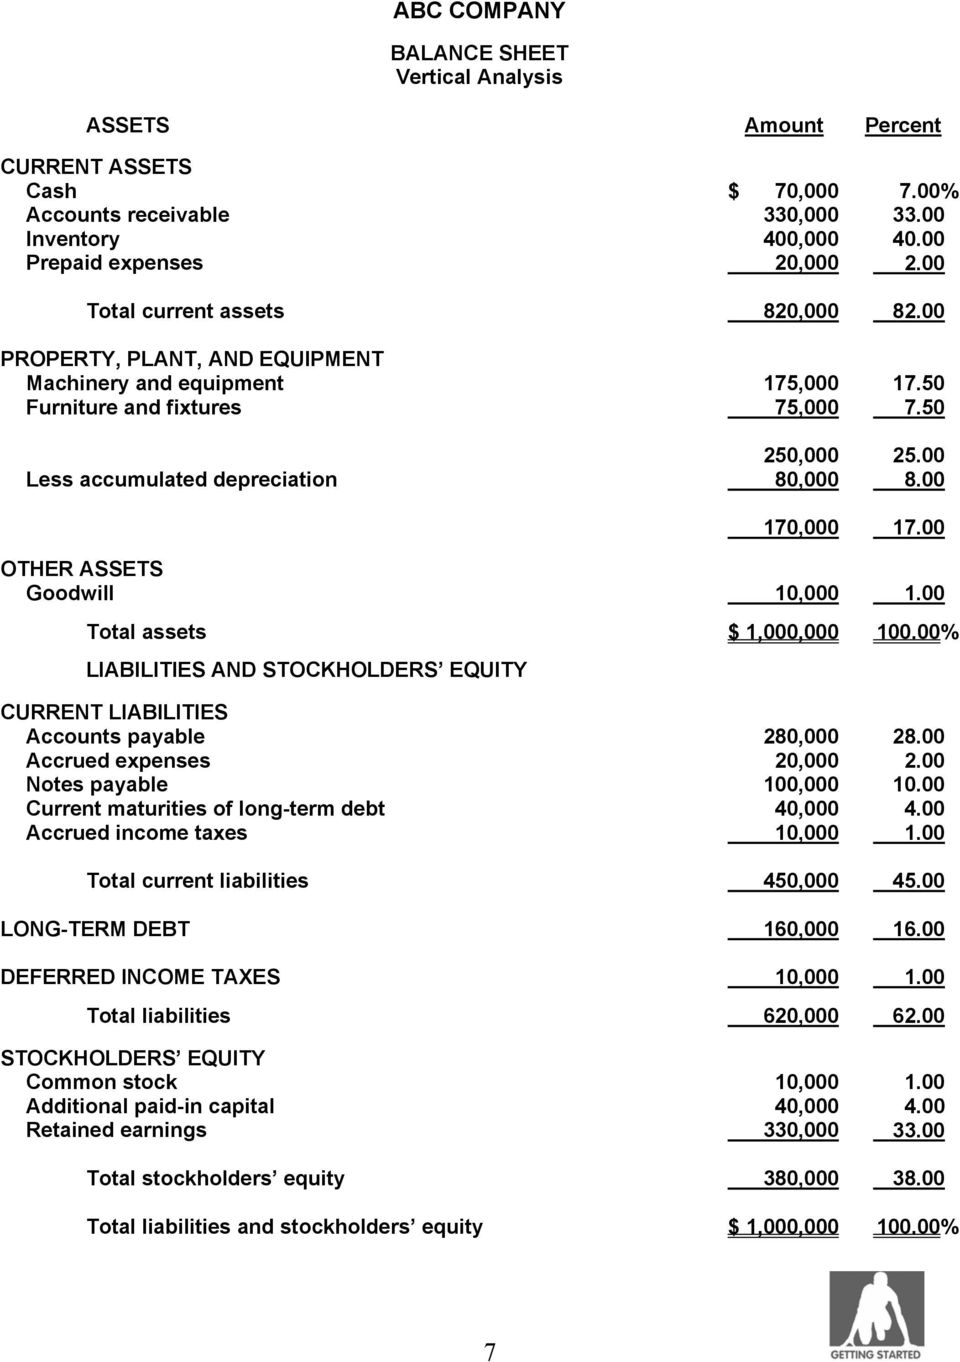 00 170,000 17.00 OTHER ASSETS Goodwill 10,000 1.00 Total assets $ 1,000,000 100.00% LIABILITIES AND STOCKHOLDERS EQUITY CURRENT LIABILITIES Accounts payable 280,000 28.00 Accrued expenses 20,000 2.